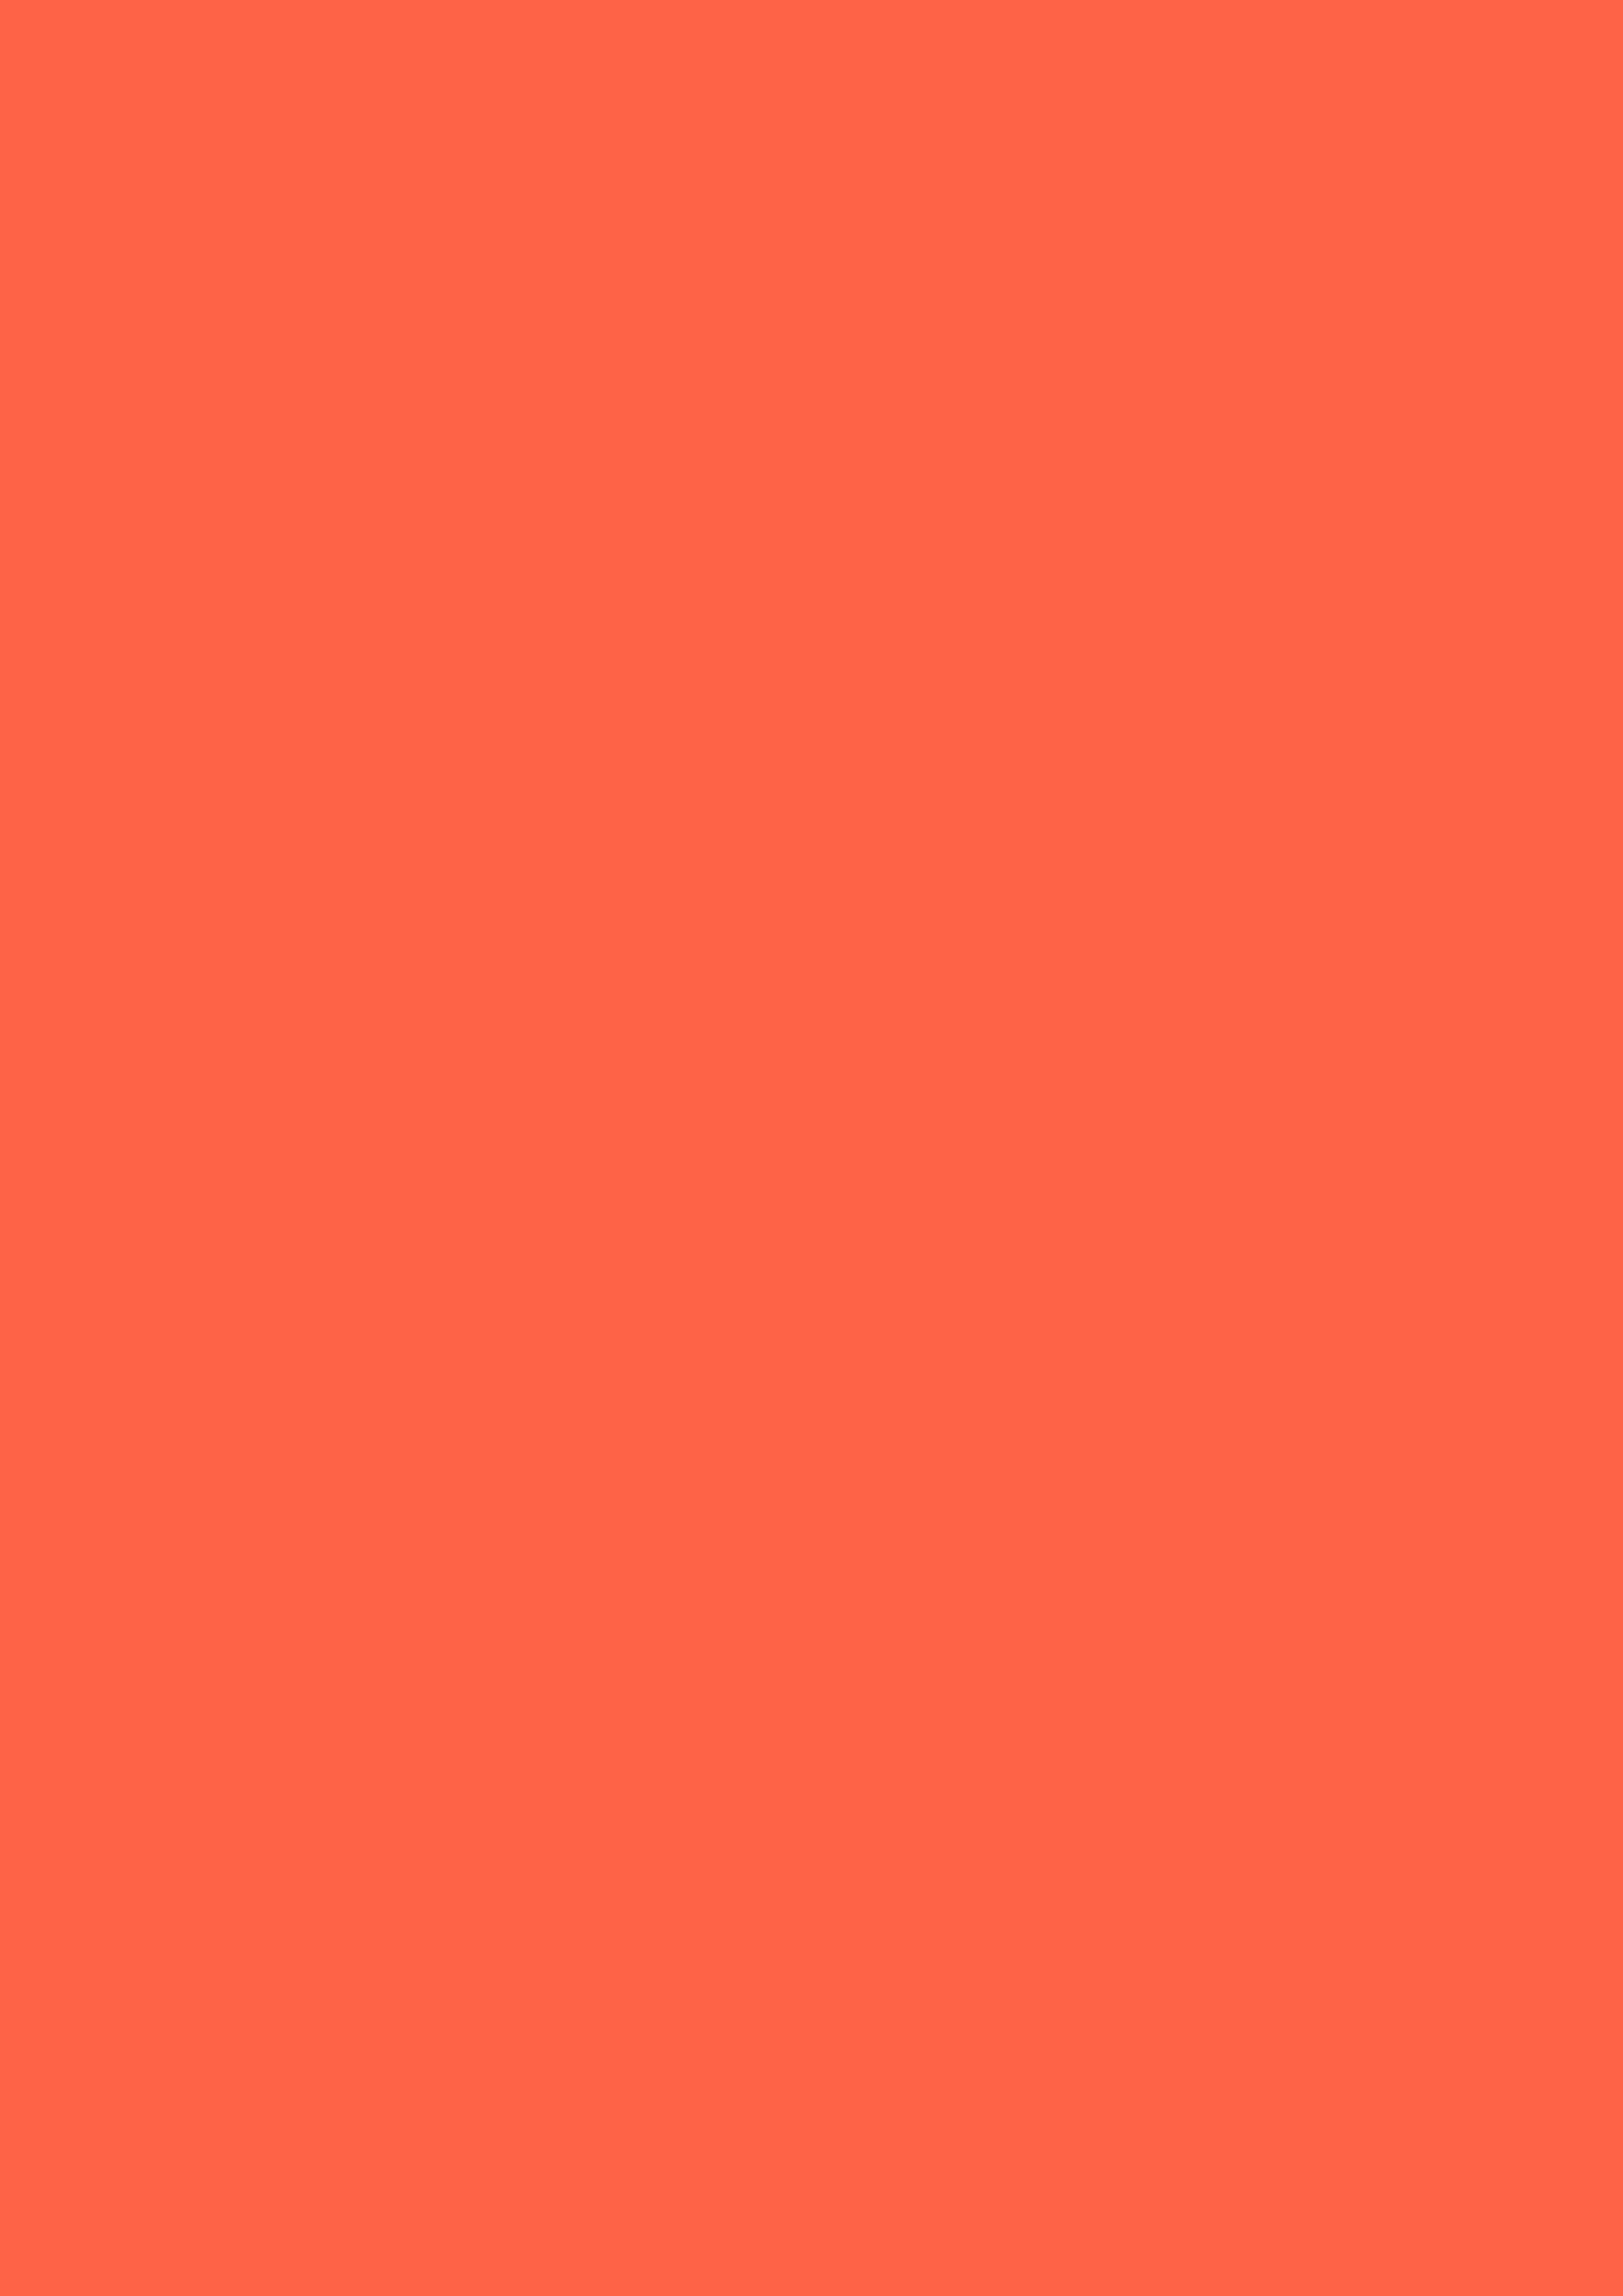 2480x3508 Tomato Solid Color Background